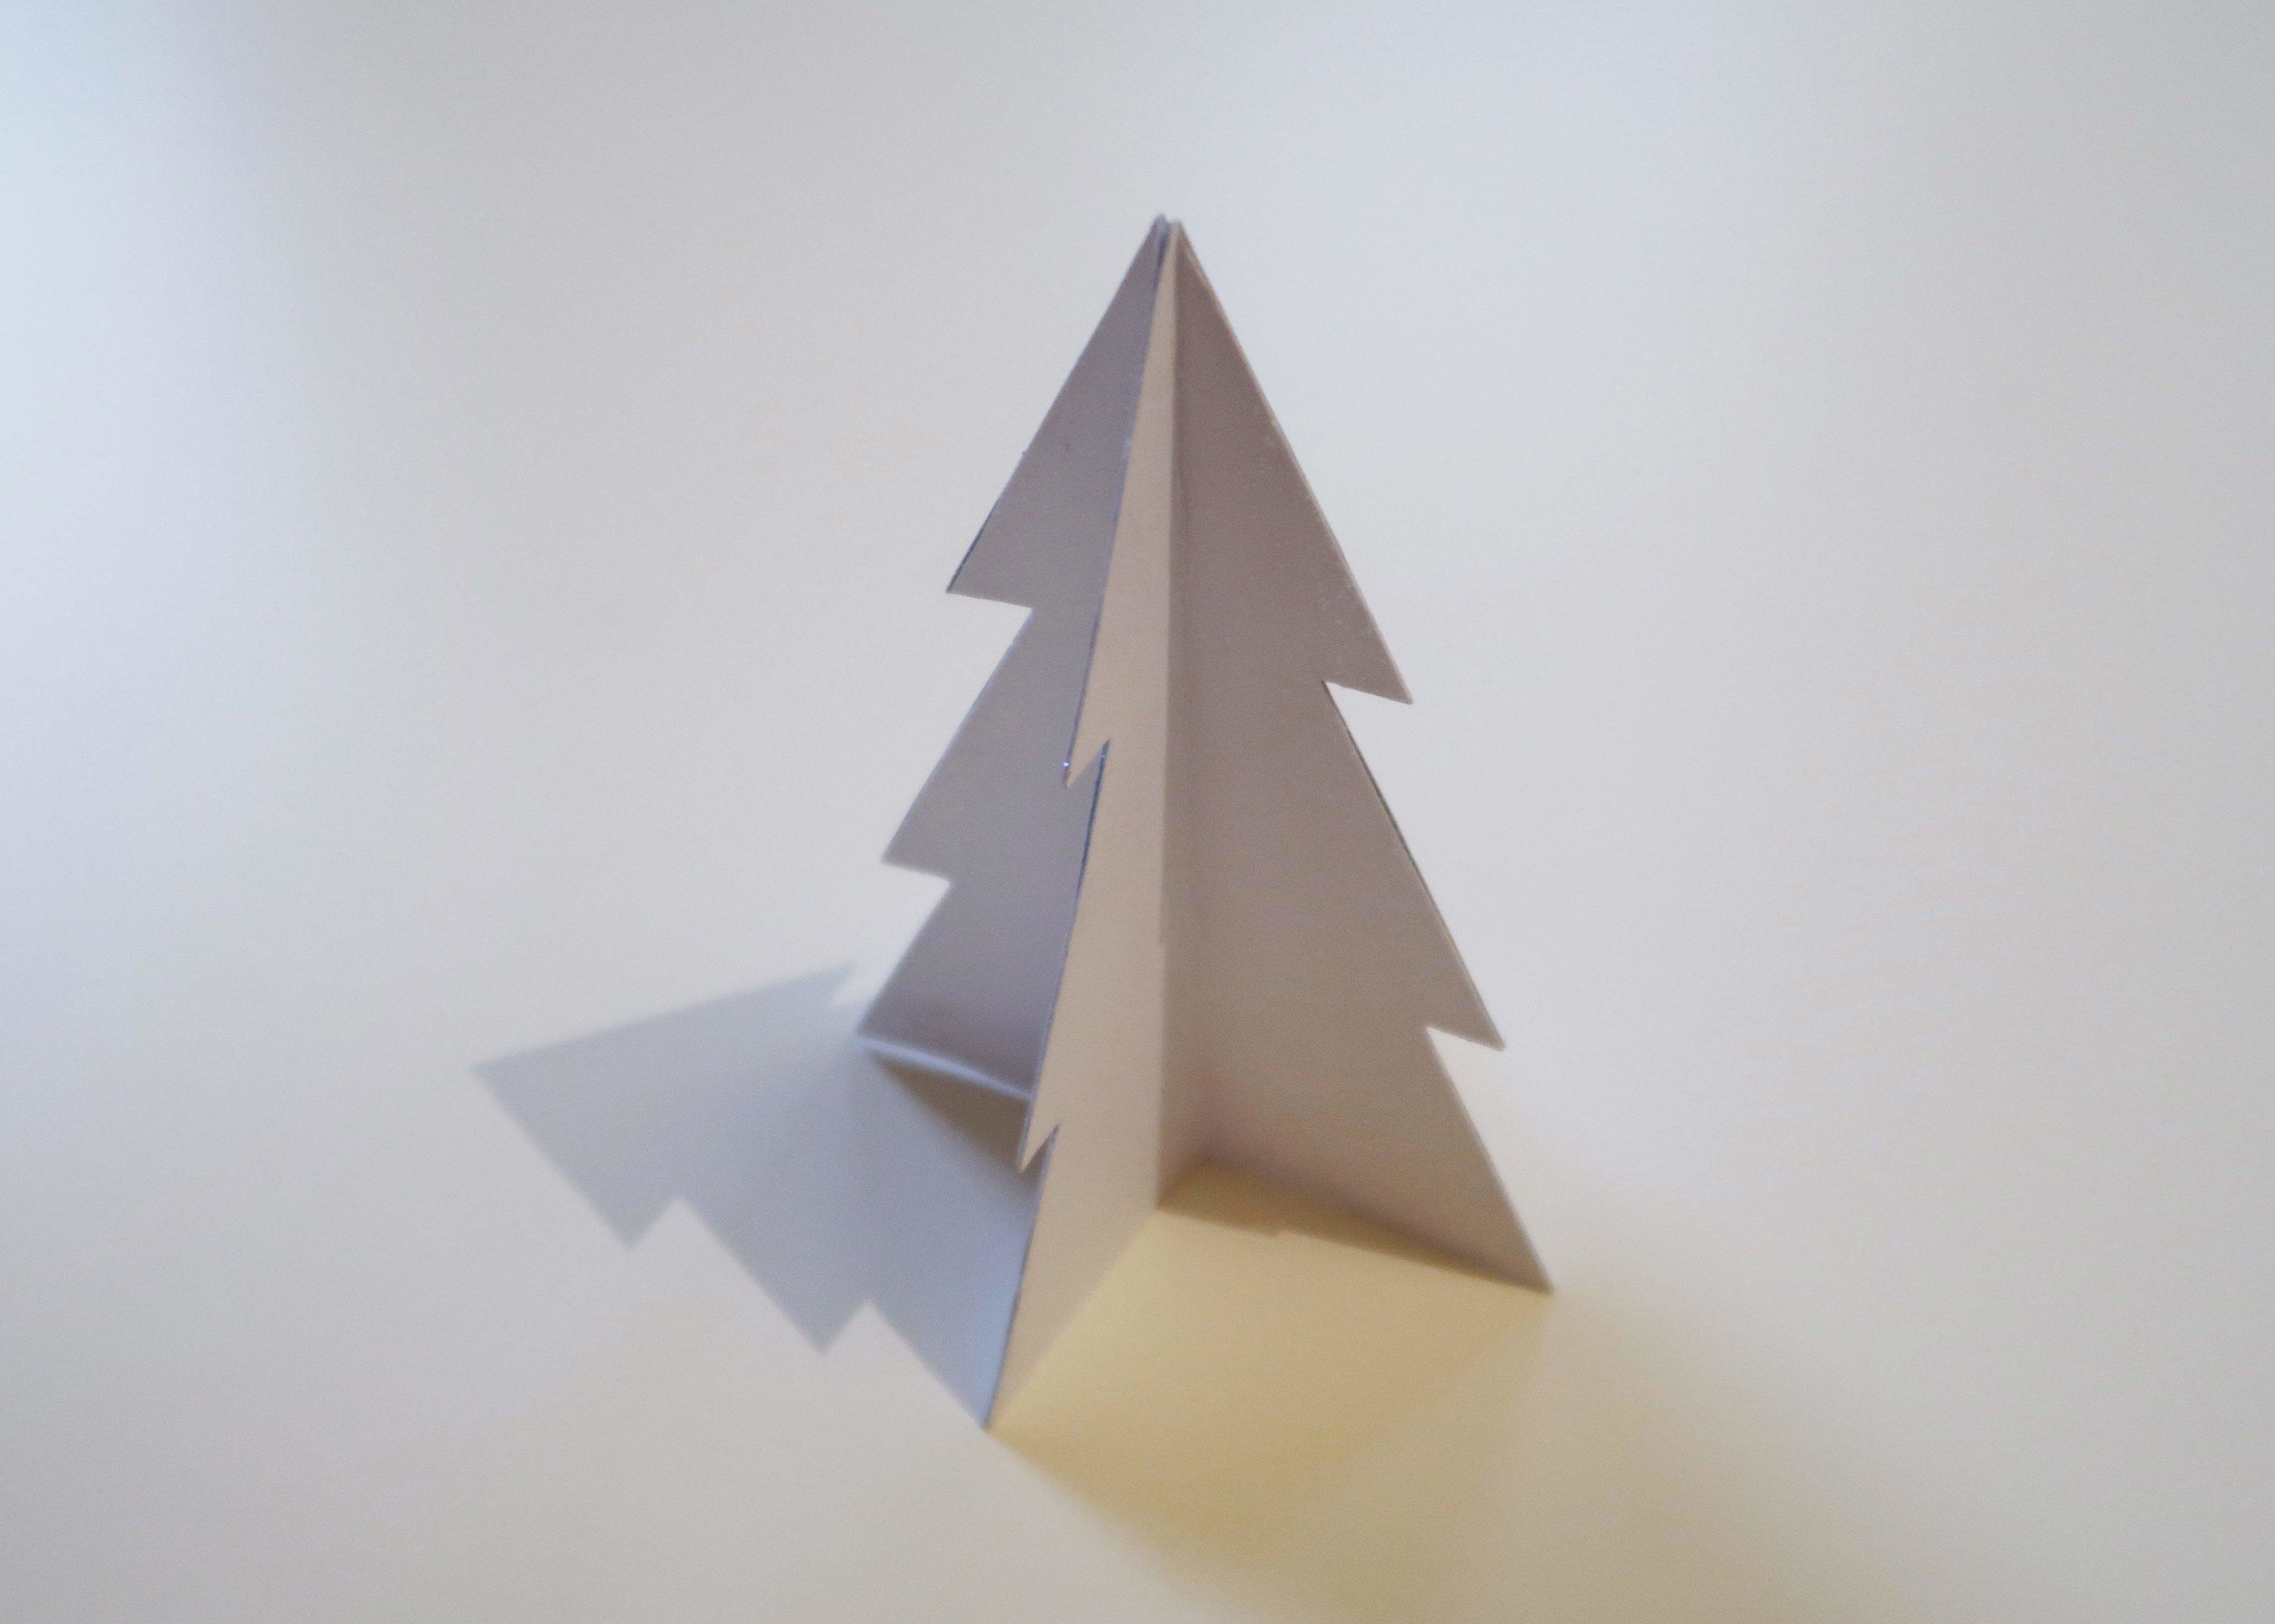 4. - Next, stick the trees together so that the dotted line is facing inwards. The easiest way to do this is to cover one half of one tree in glue and then stick one half of another tree to it and so on, until you've used all four trees and your now 3D tree is able to stand by itself.